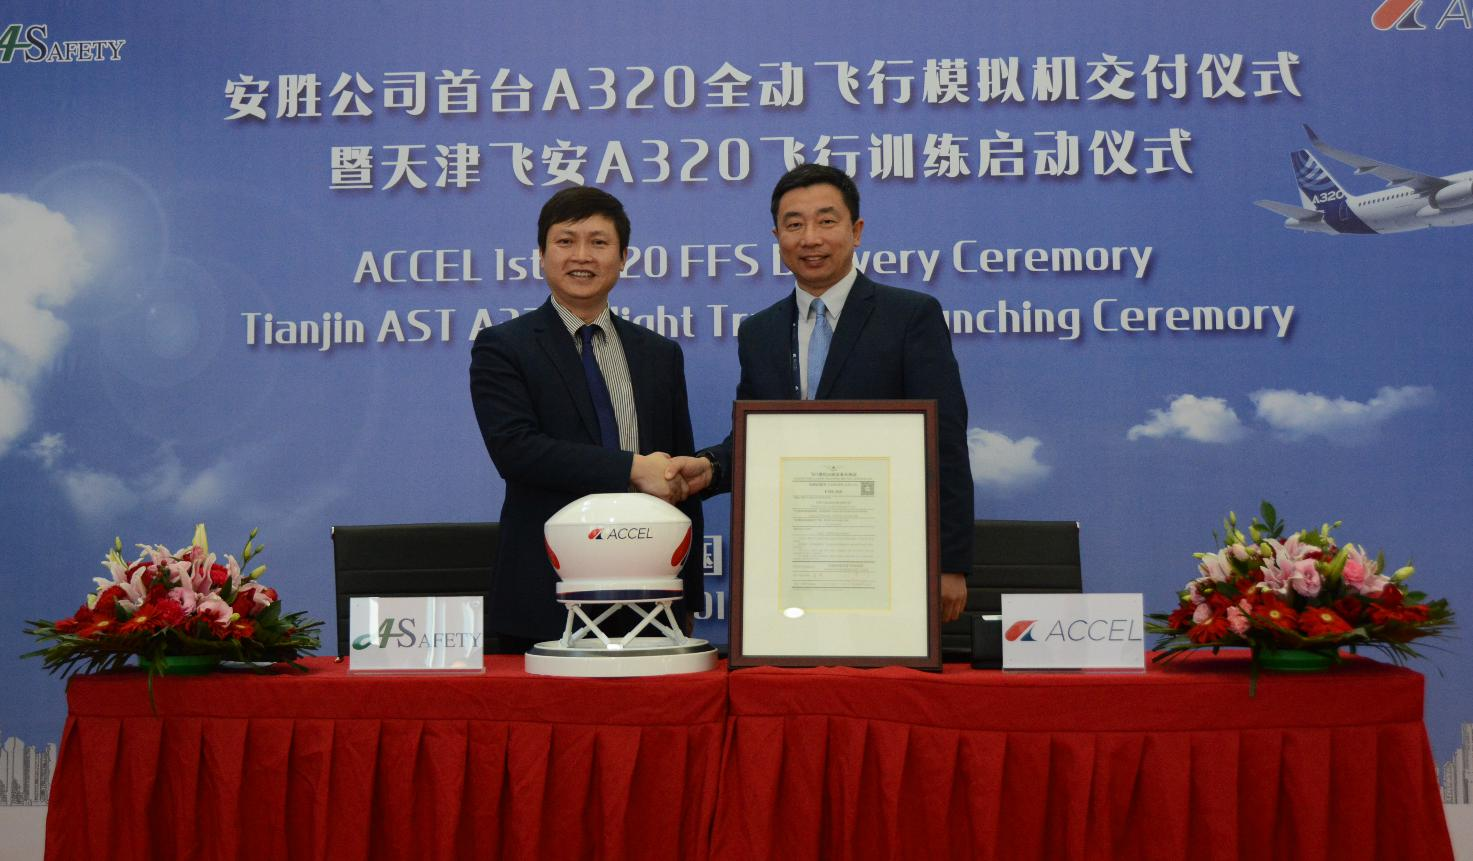 ACCEL First A320 Full Flight Simulator Passed CAAC Level D Certification and Delivered to Tianjin AST